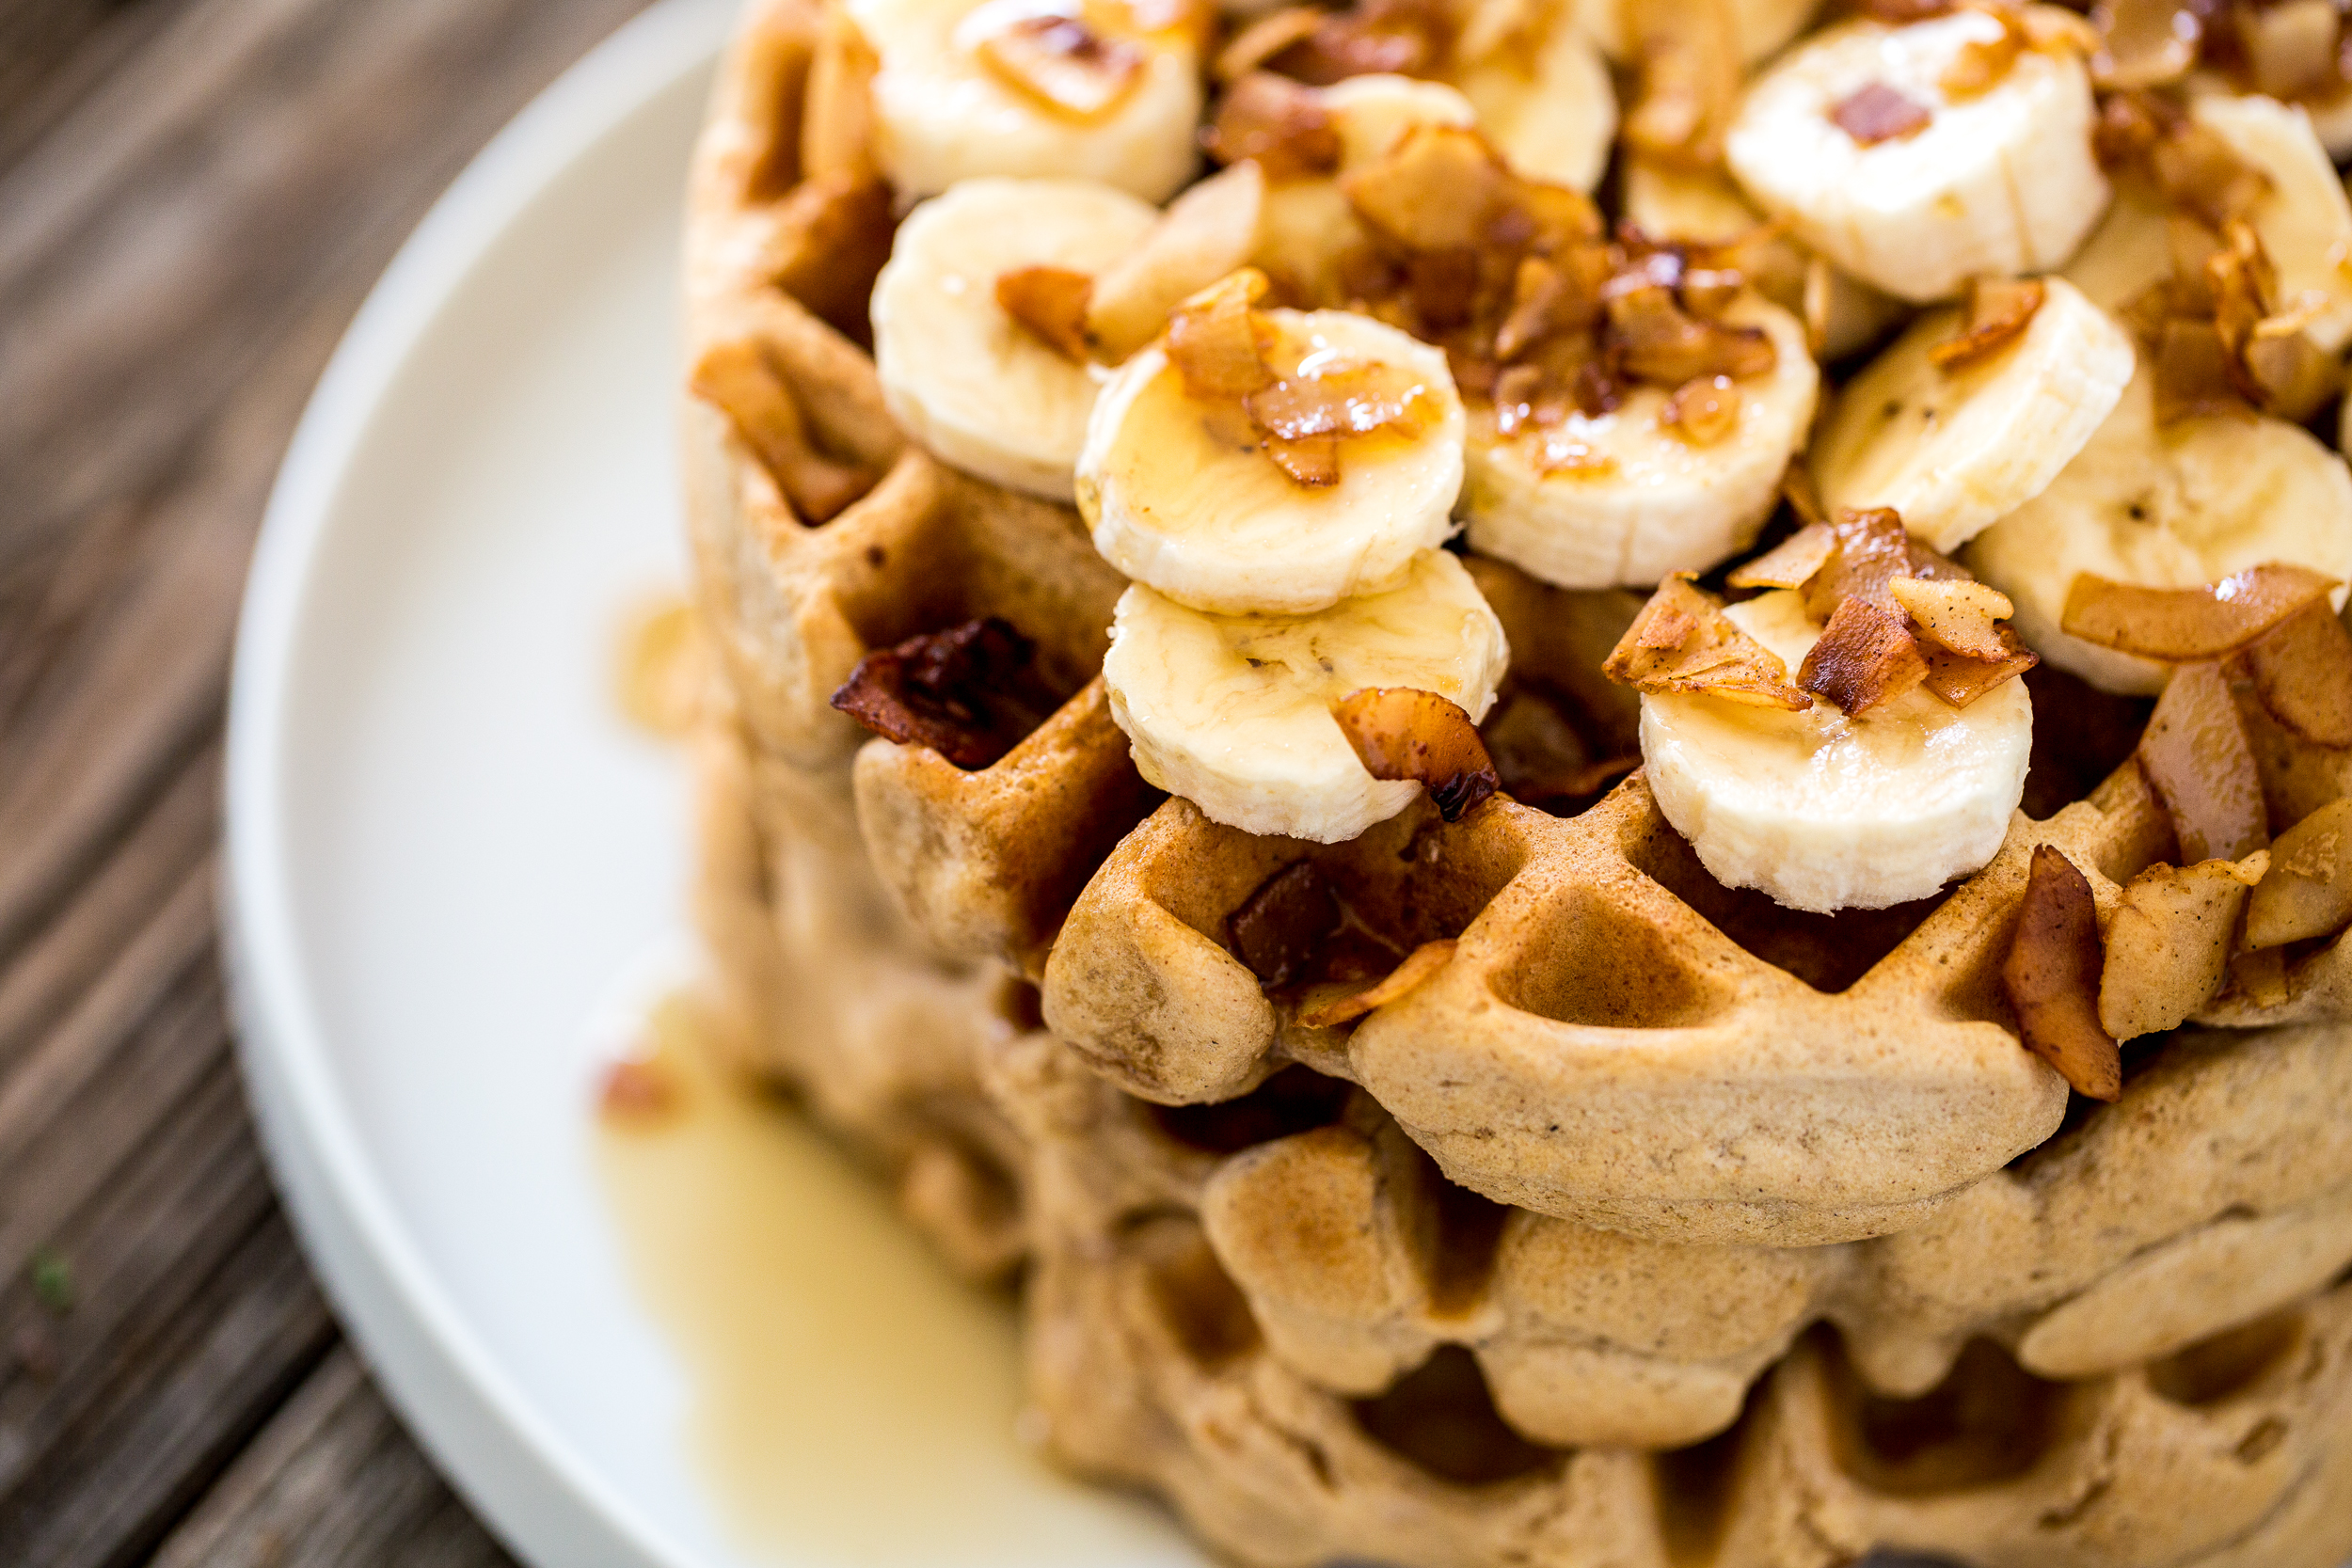 Bacon Banana Waffle Sandwich With Peanut Butter And Maple Syrup Maple